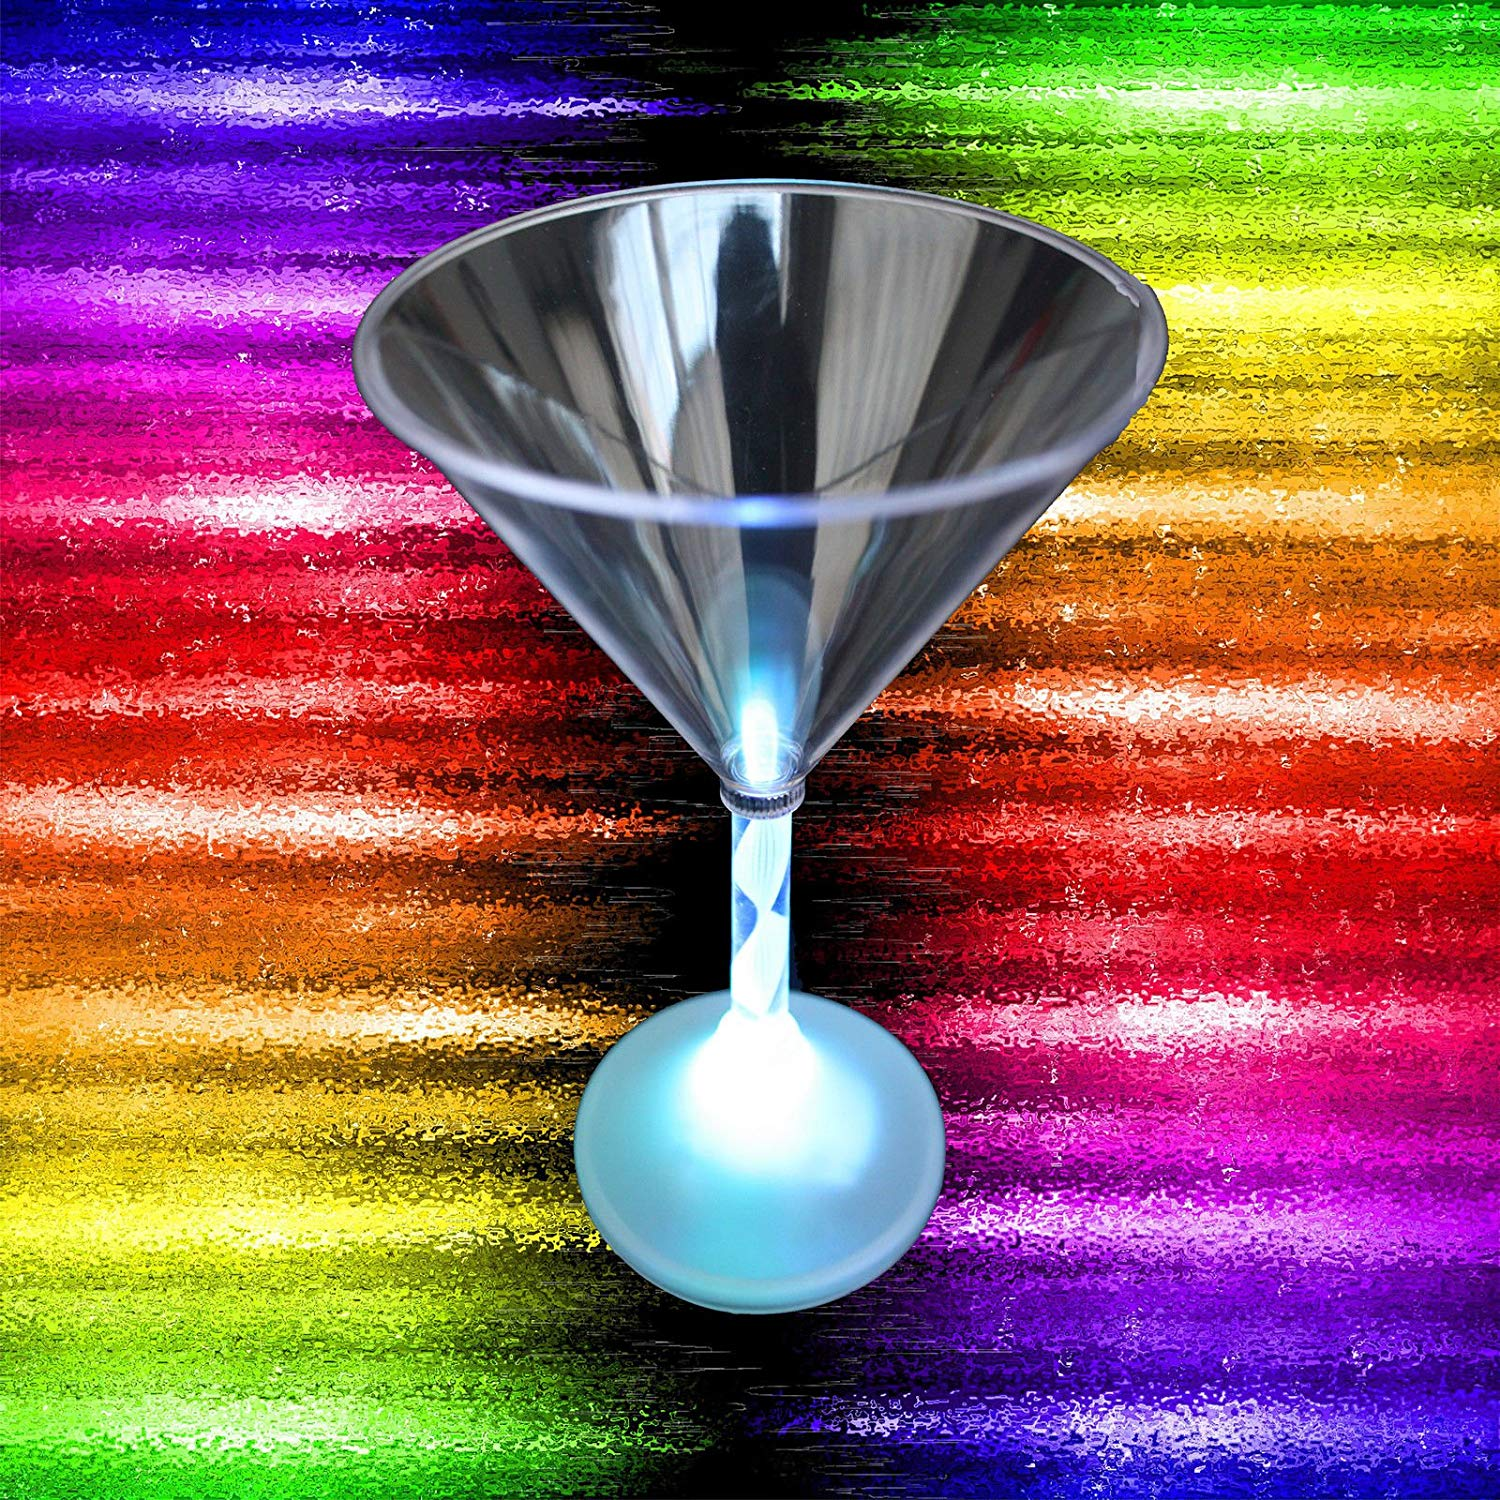 10pk-Blinking Rainbow Color-LED LIGHT UP GLOW MARTINI GLASS-Birthday Party Drink